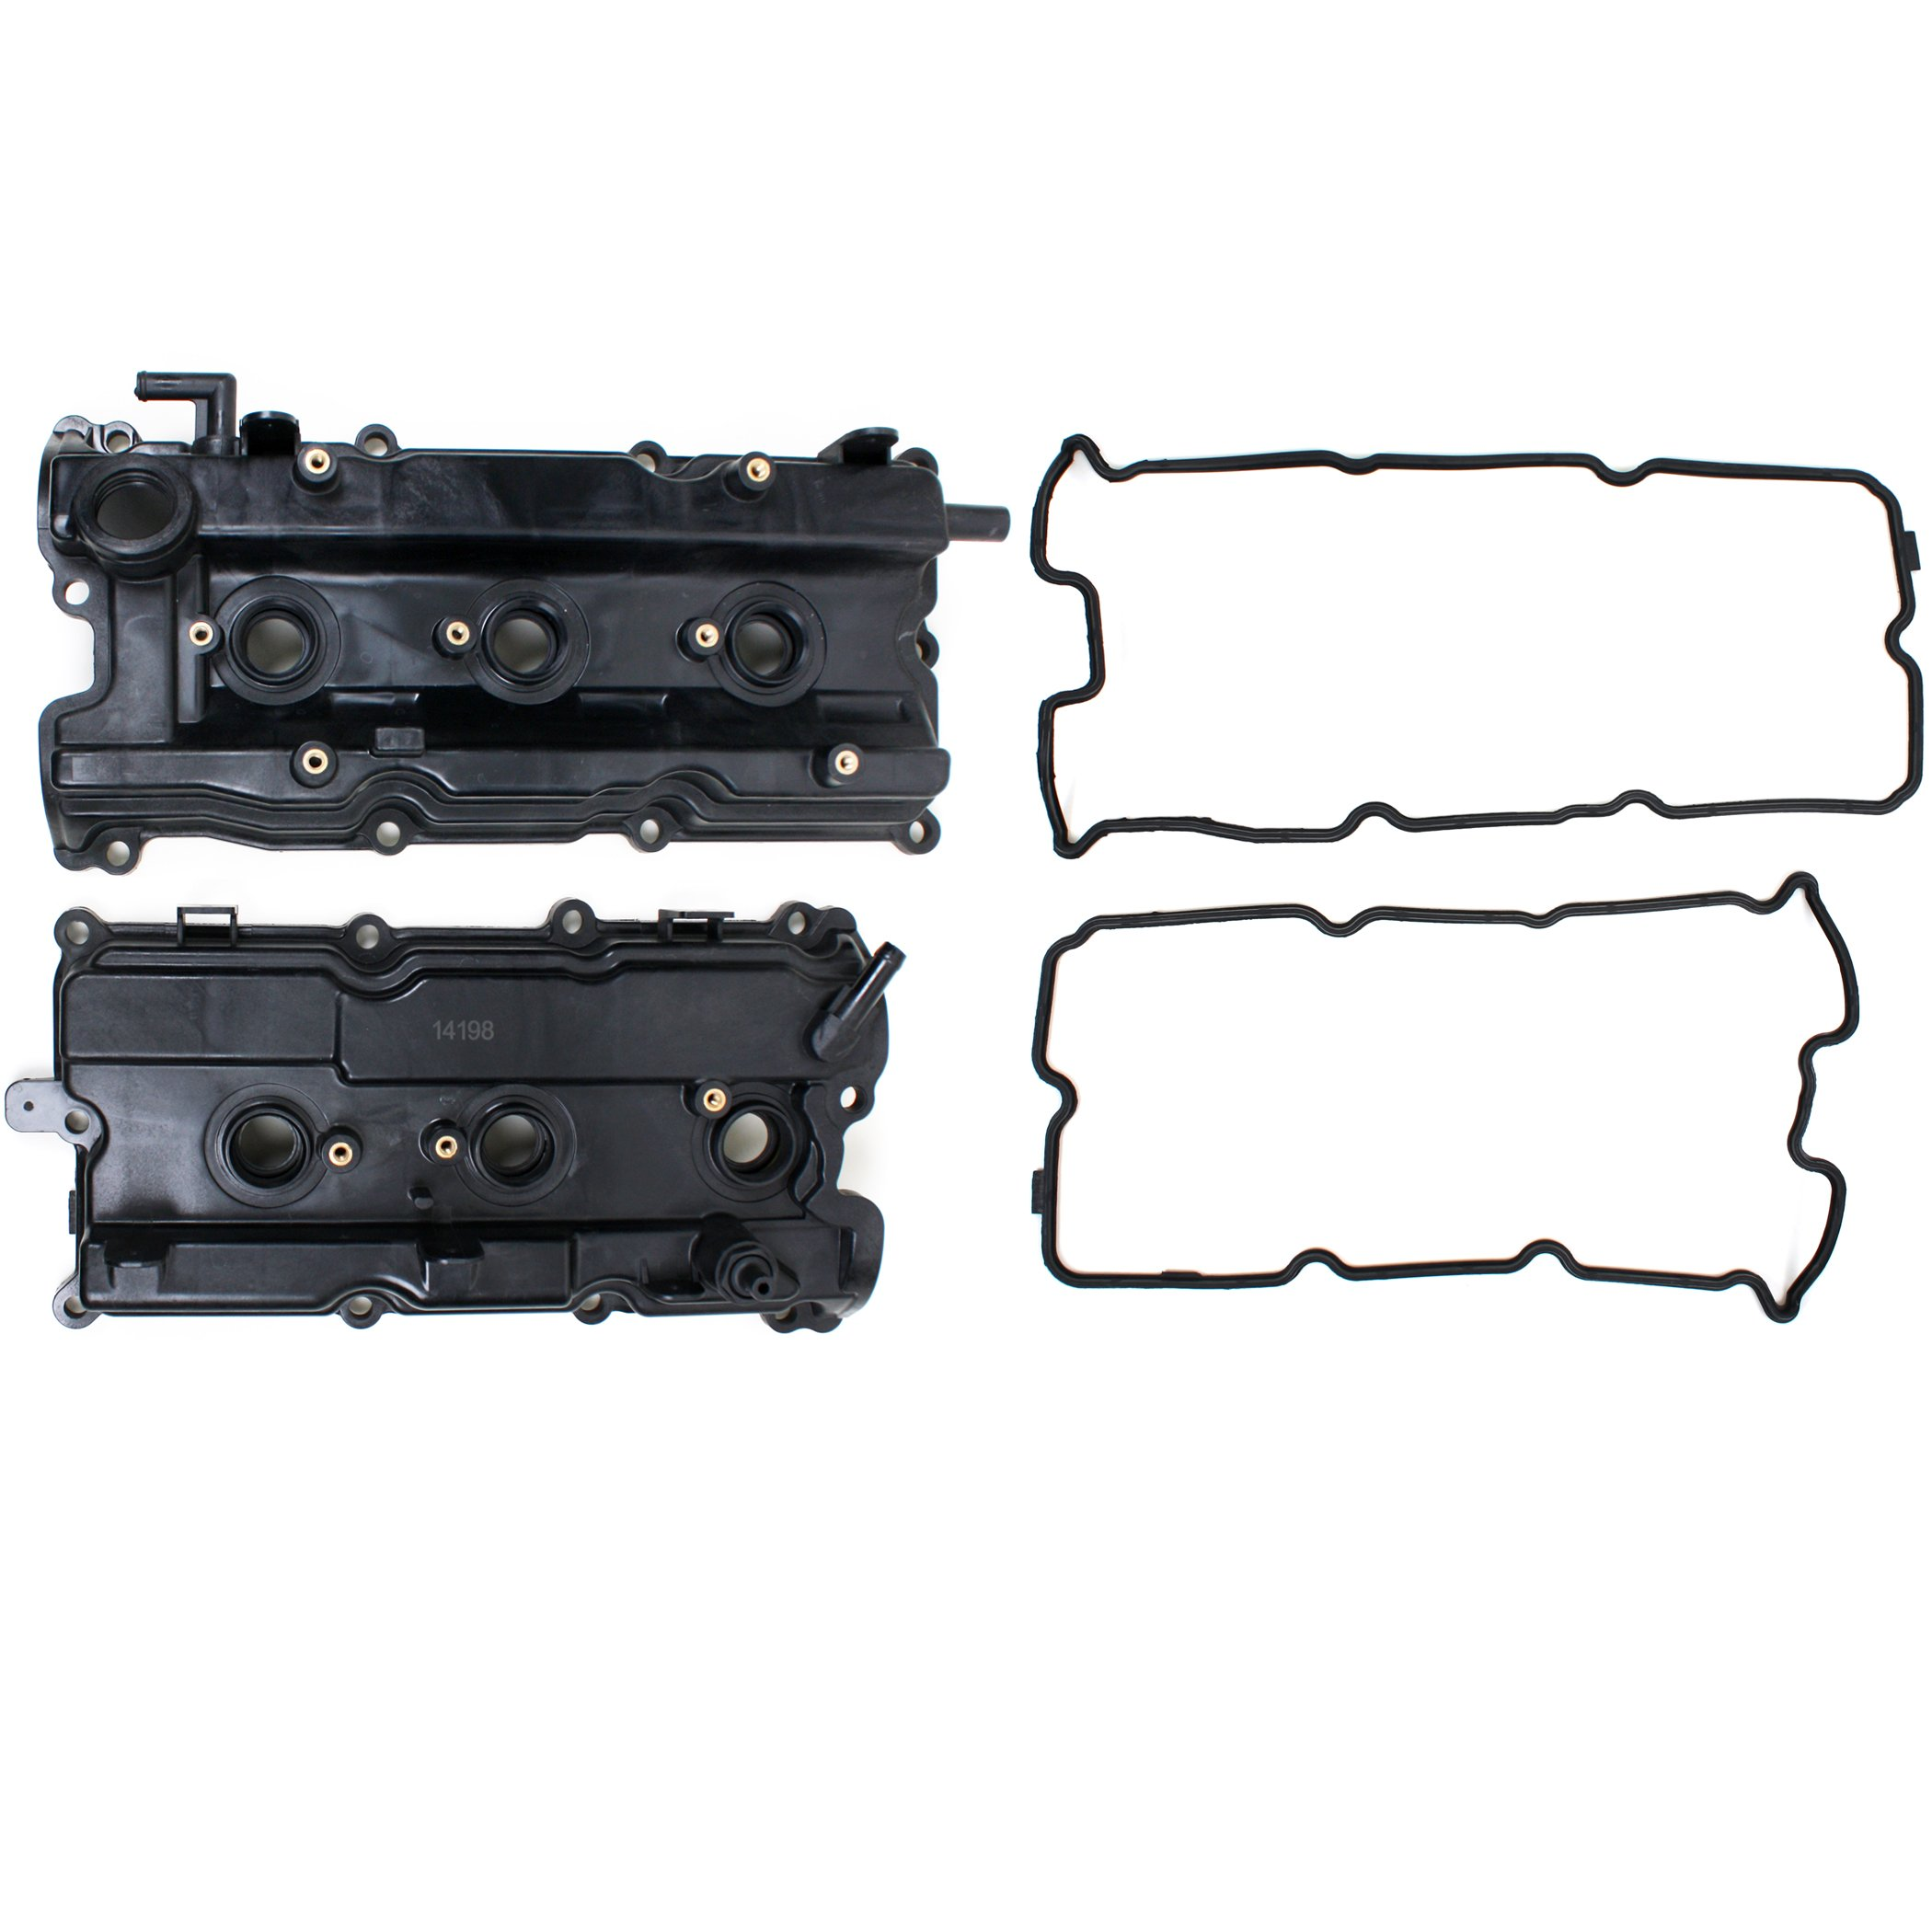 Brand New FVC130K Valve Cover Gaskets, Valve Cover, and Spark Plug Tube Seals (Both Left and Right Side) by CNS EngineParts